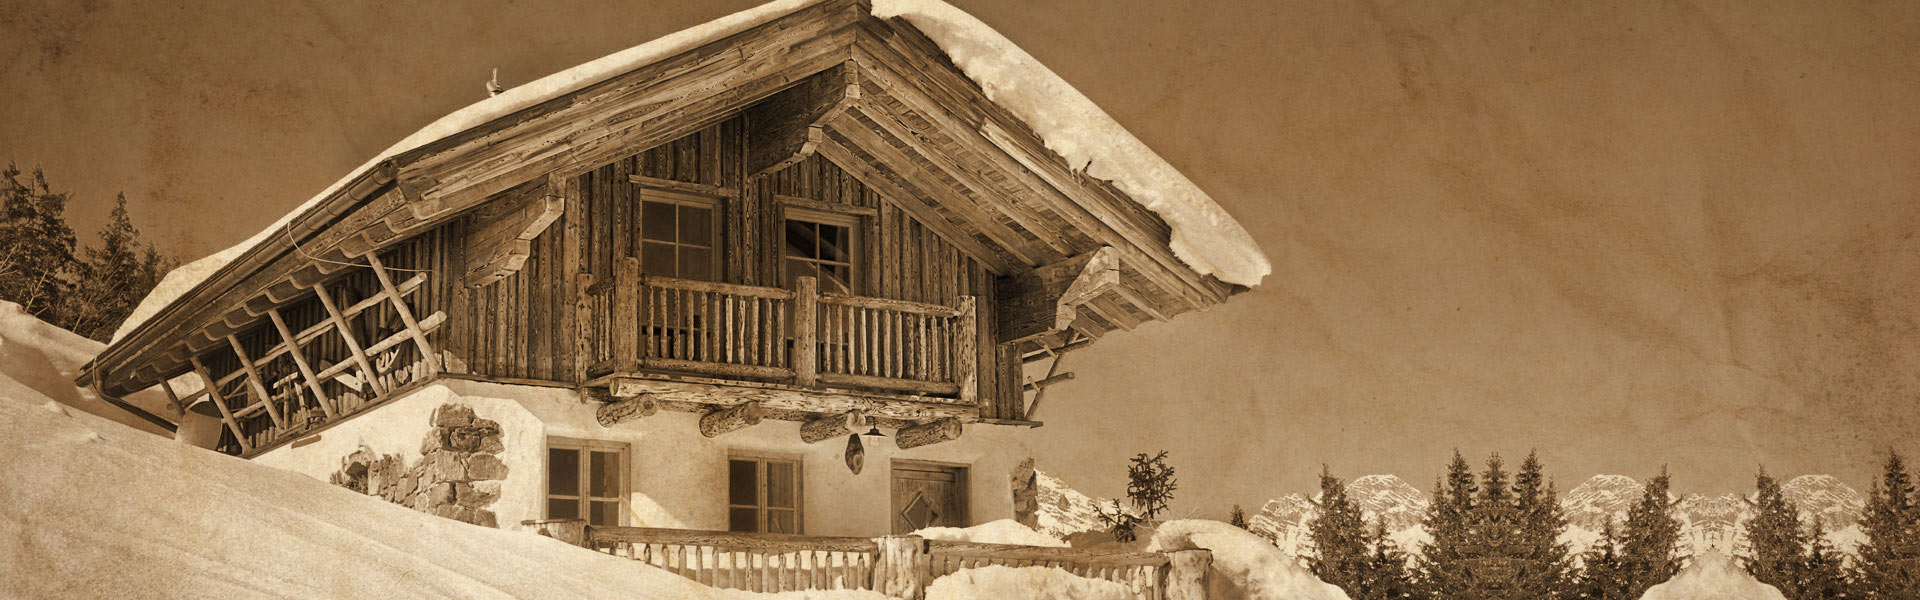 winter-chalets